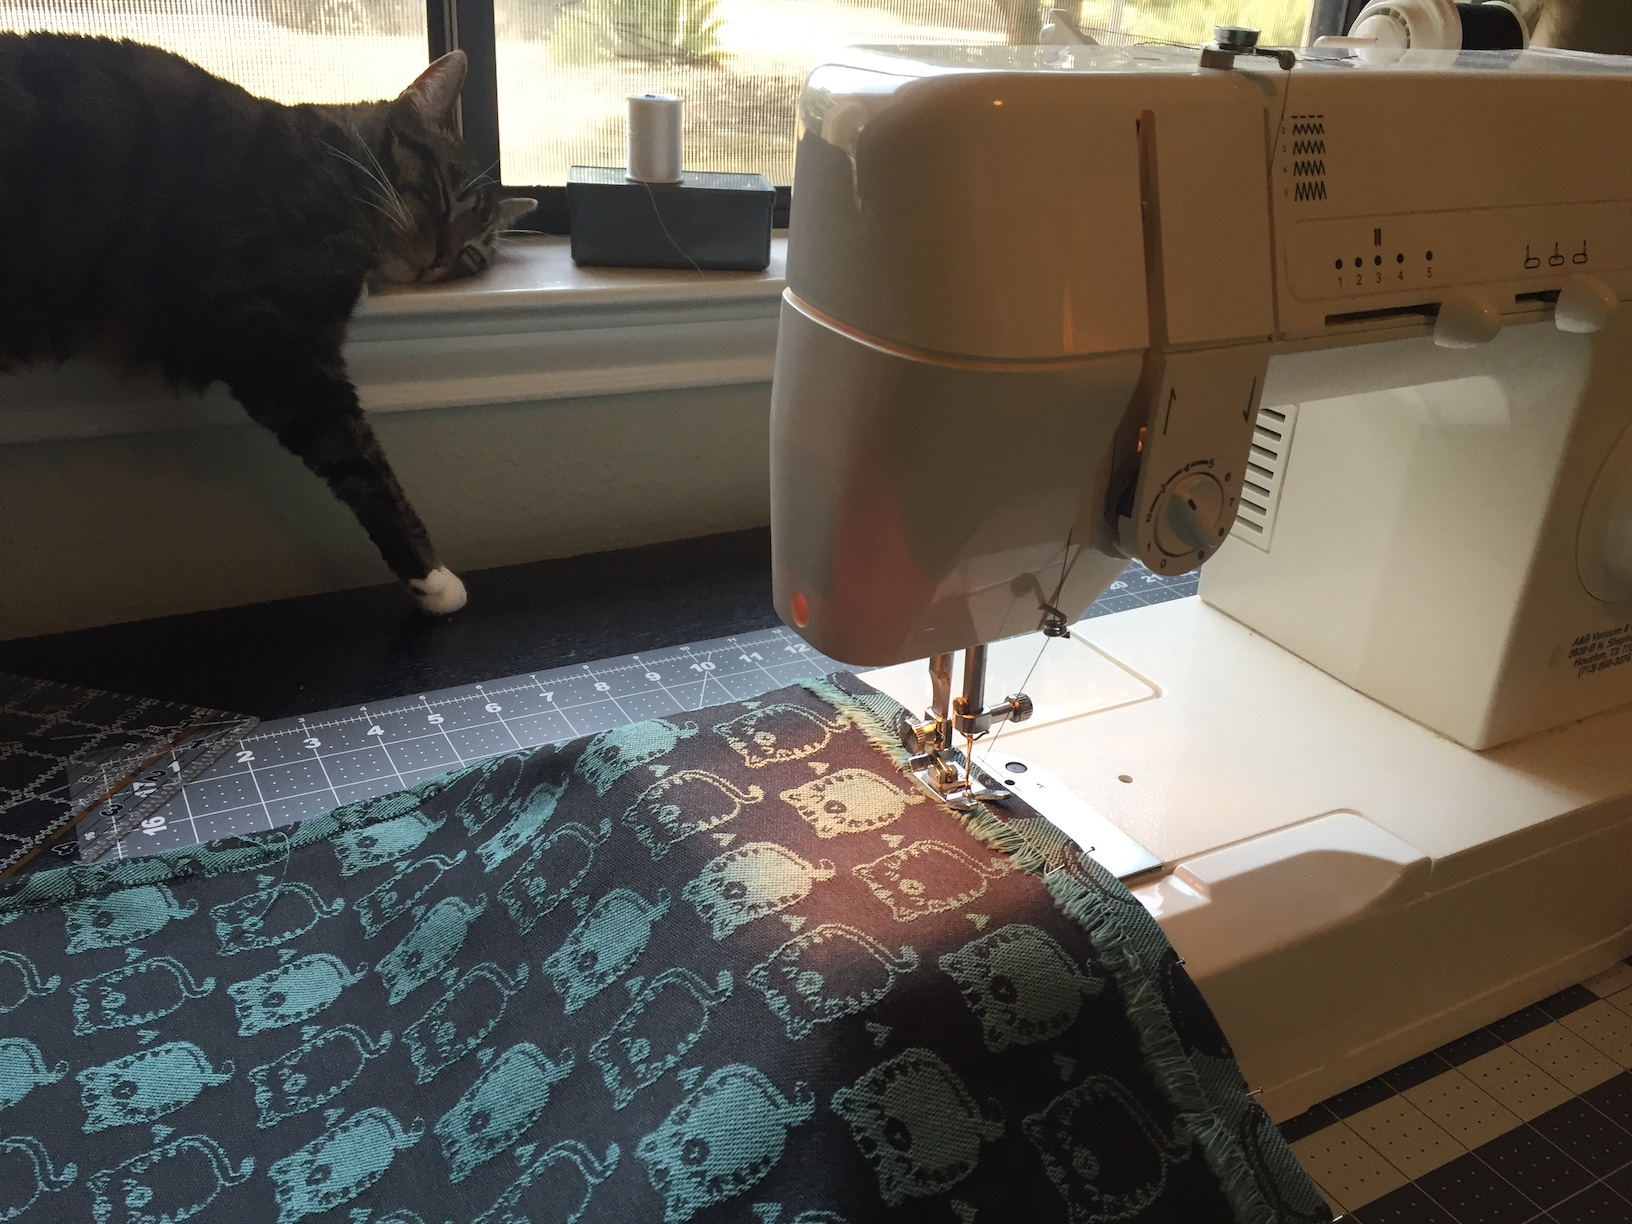 Sewing the Hem, with supervision